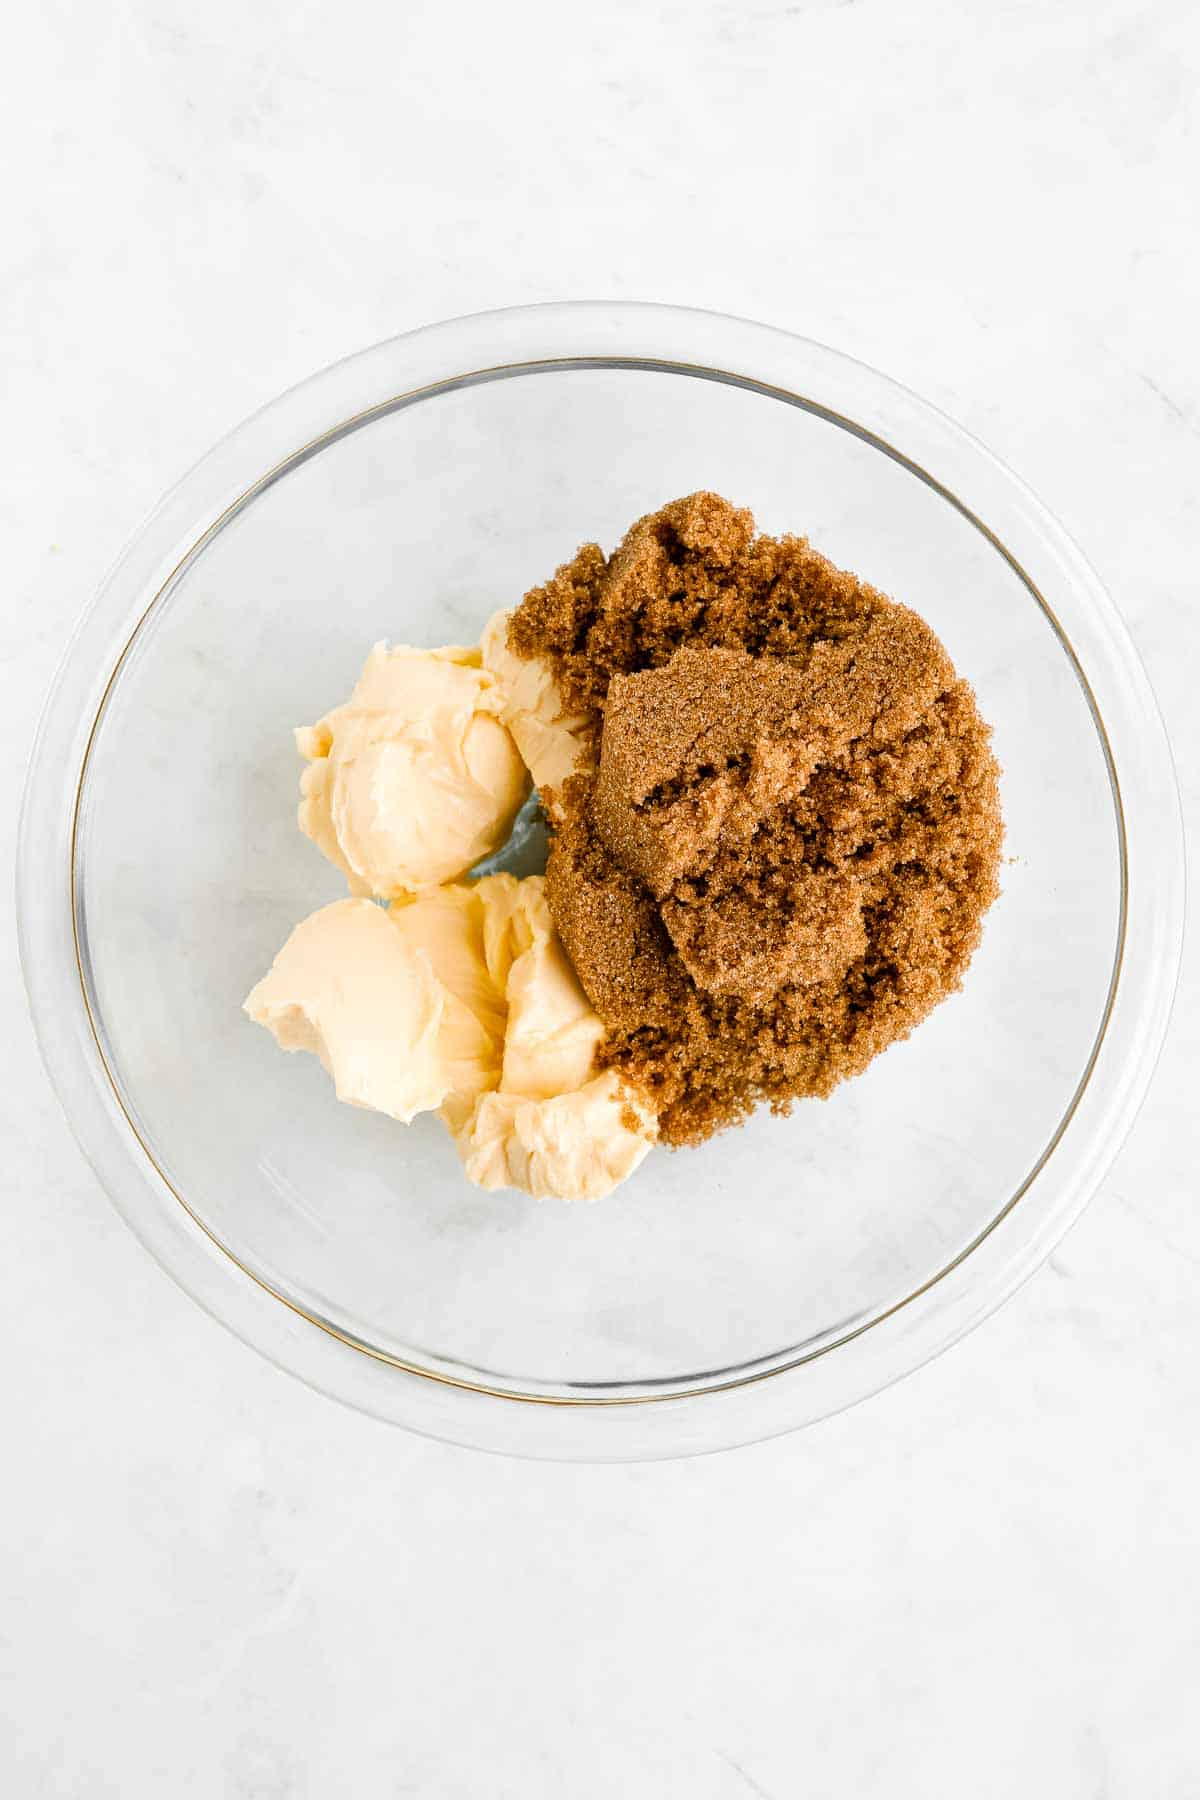 vegan butter and brown sugar in a glass bowl